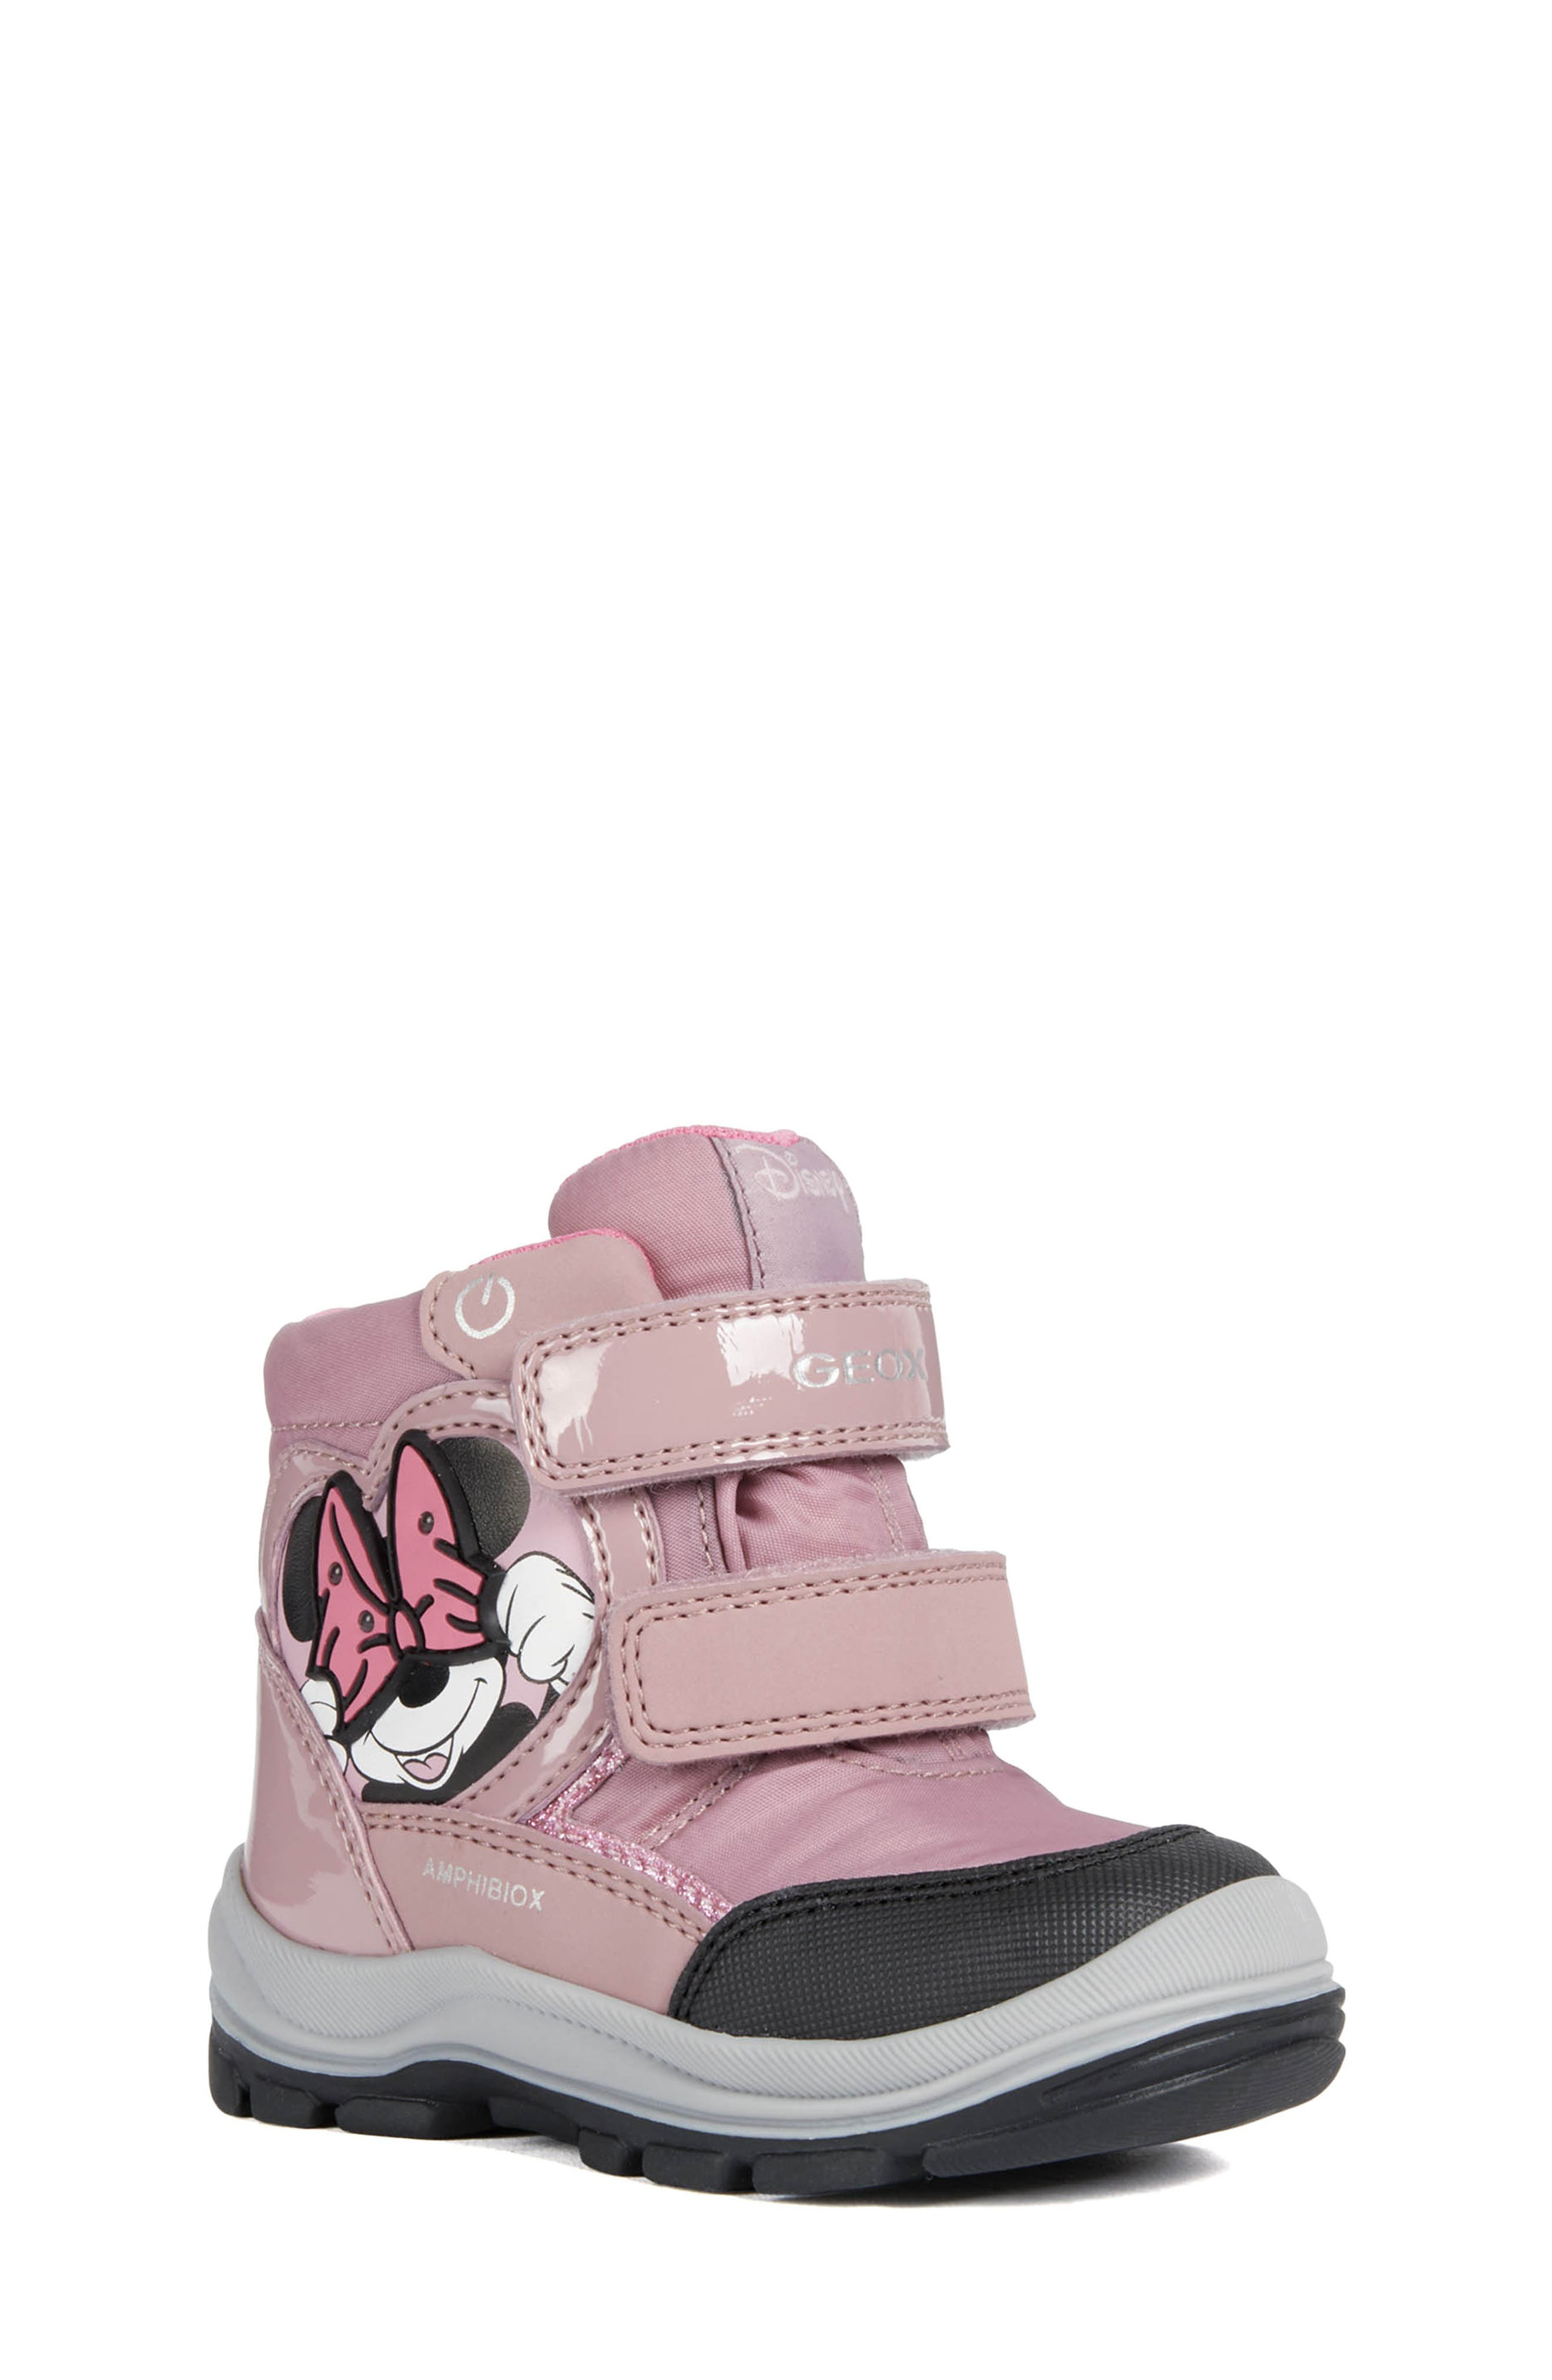 Geox Junior Eclair Girl Ankle Boots Black 40/% OFF RRP